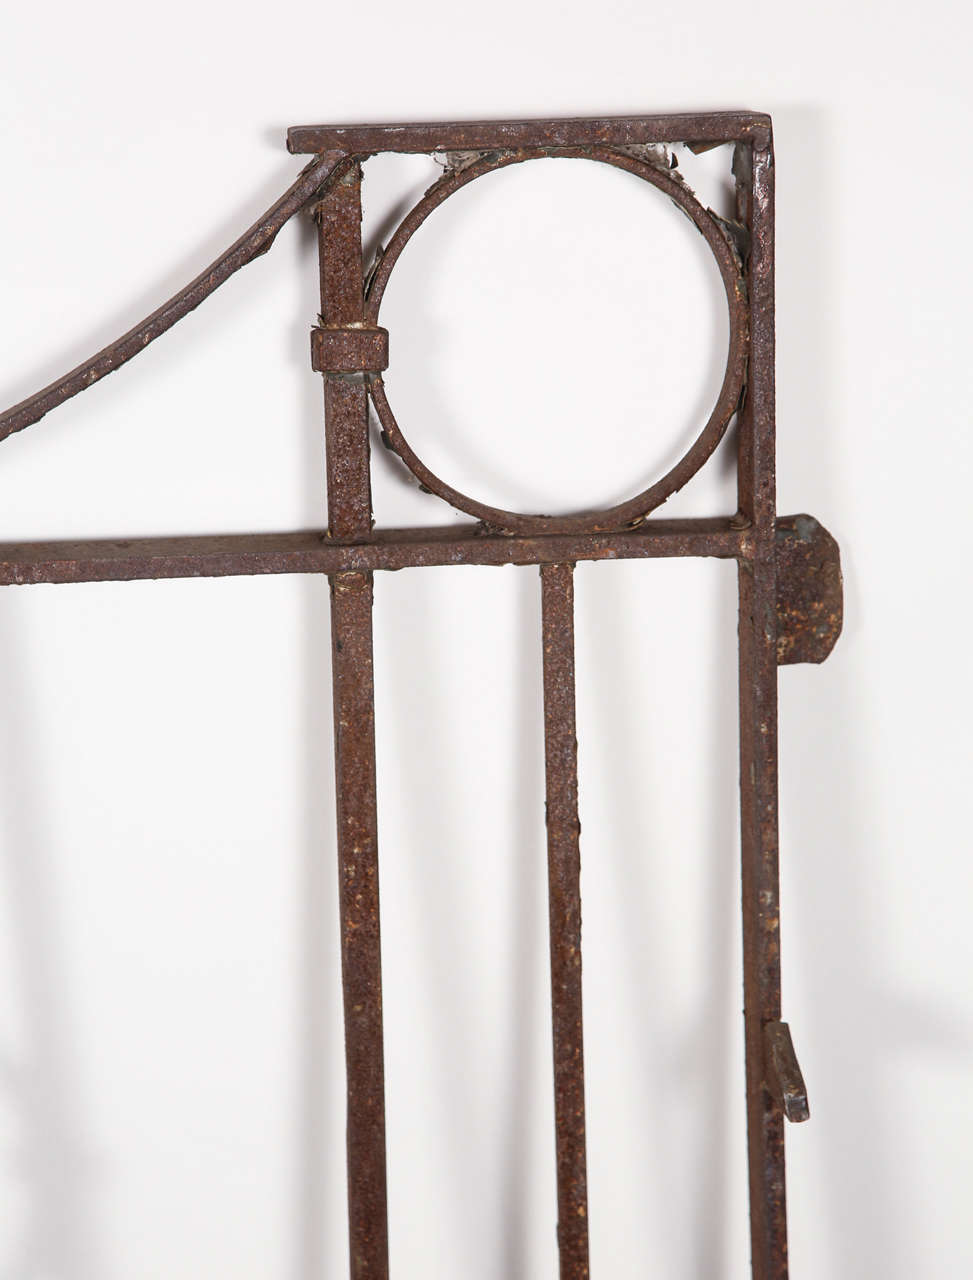 Pair Of Wrought Iron Heavy Stock Gates For Sale At 1stdibs